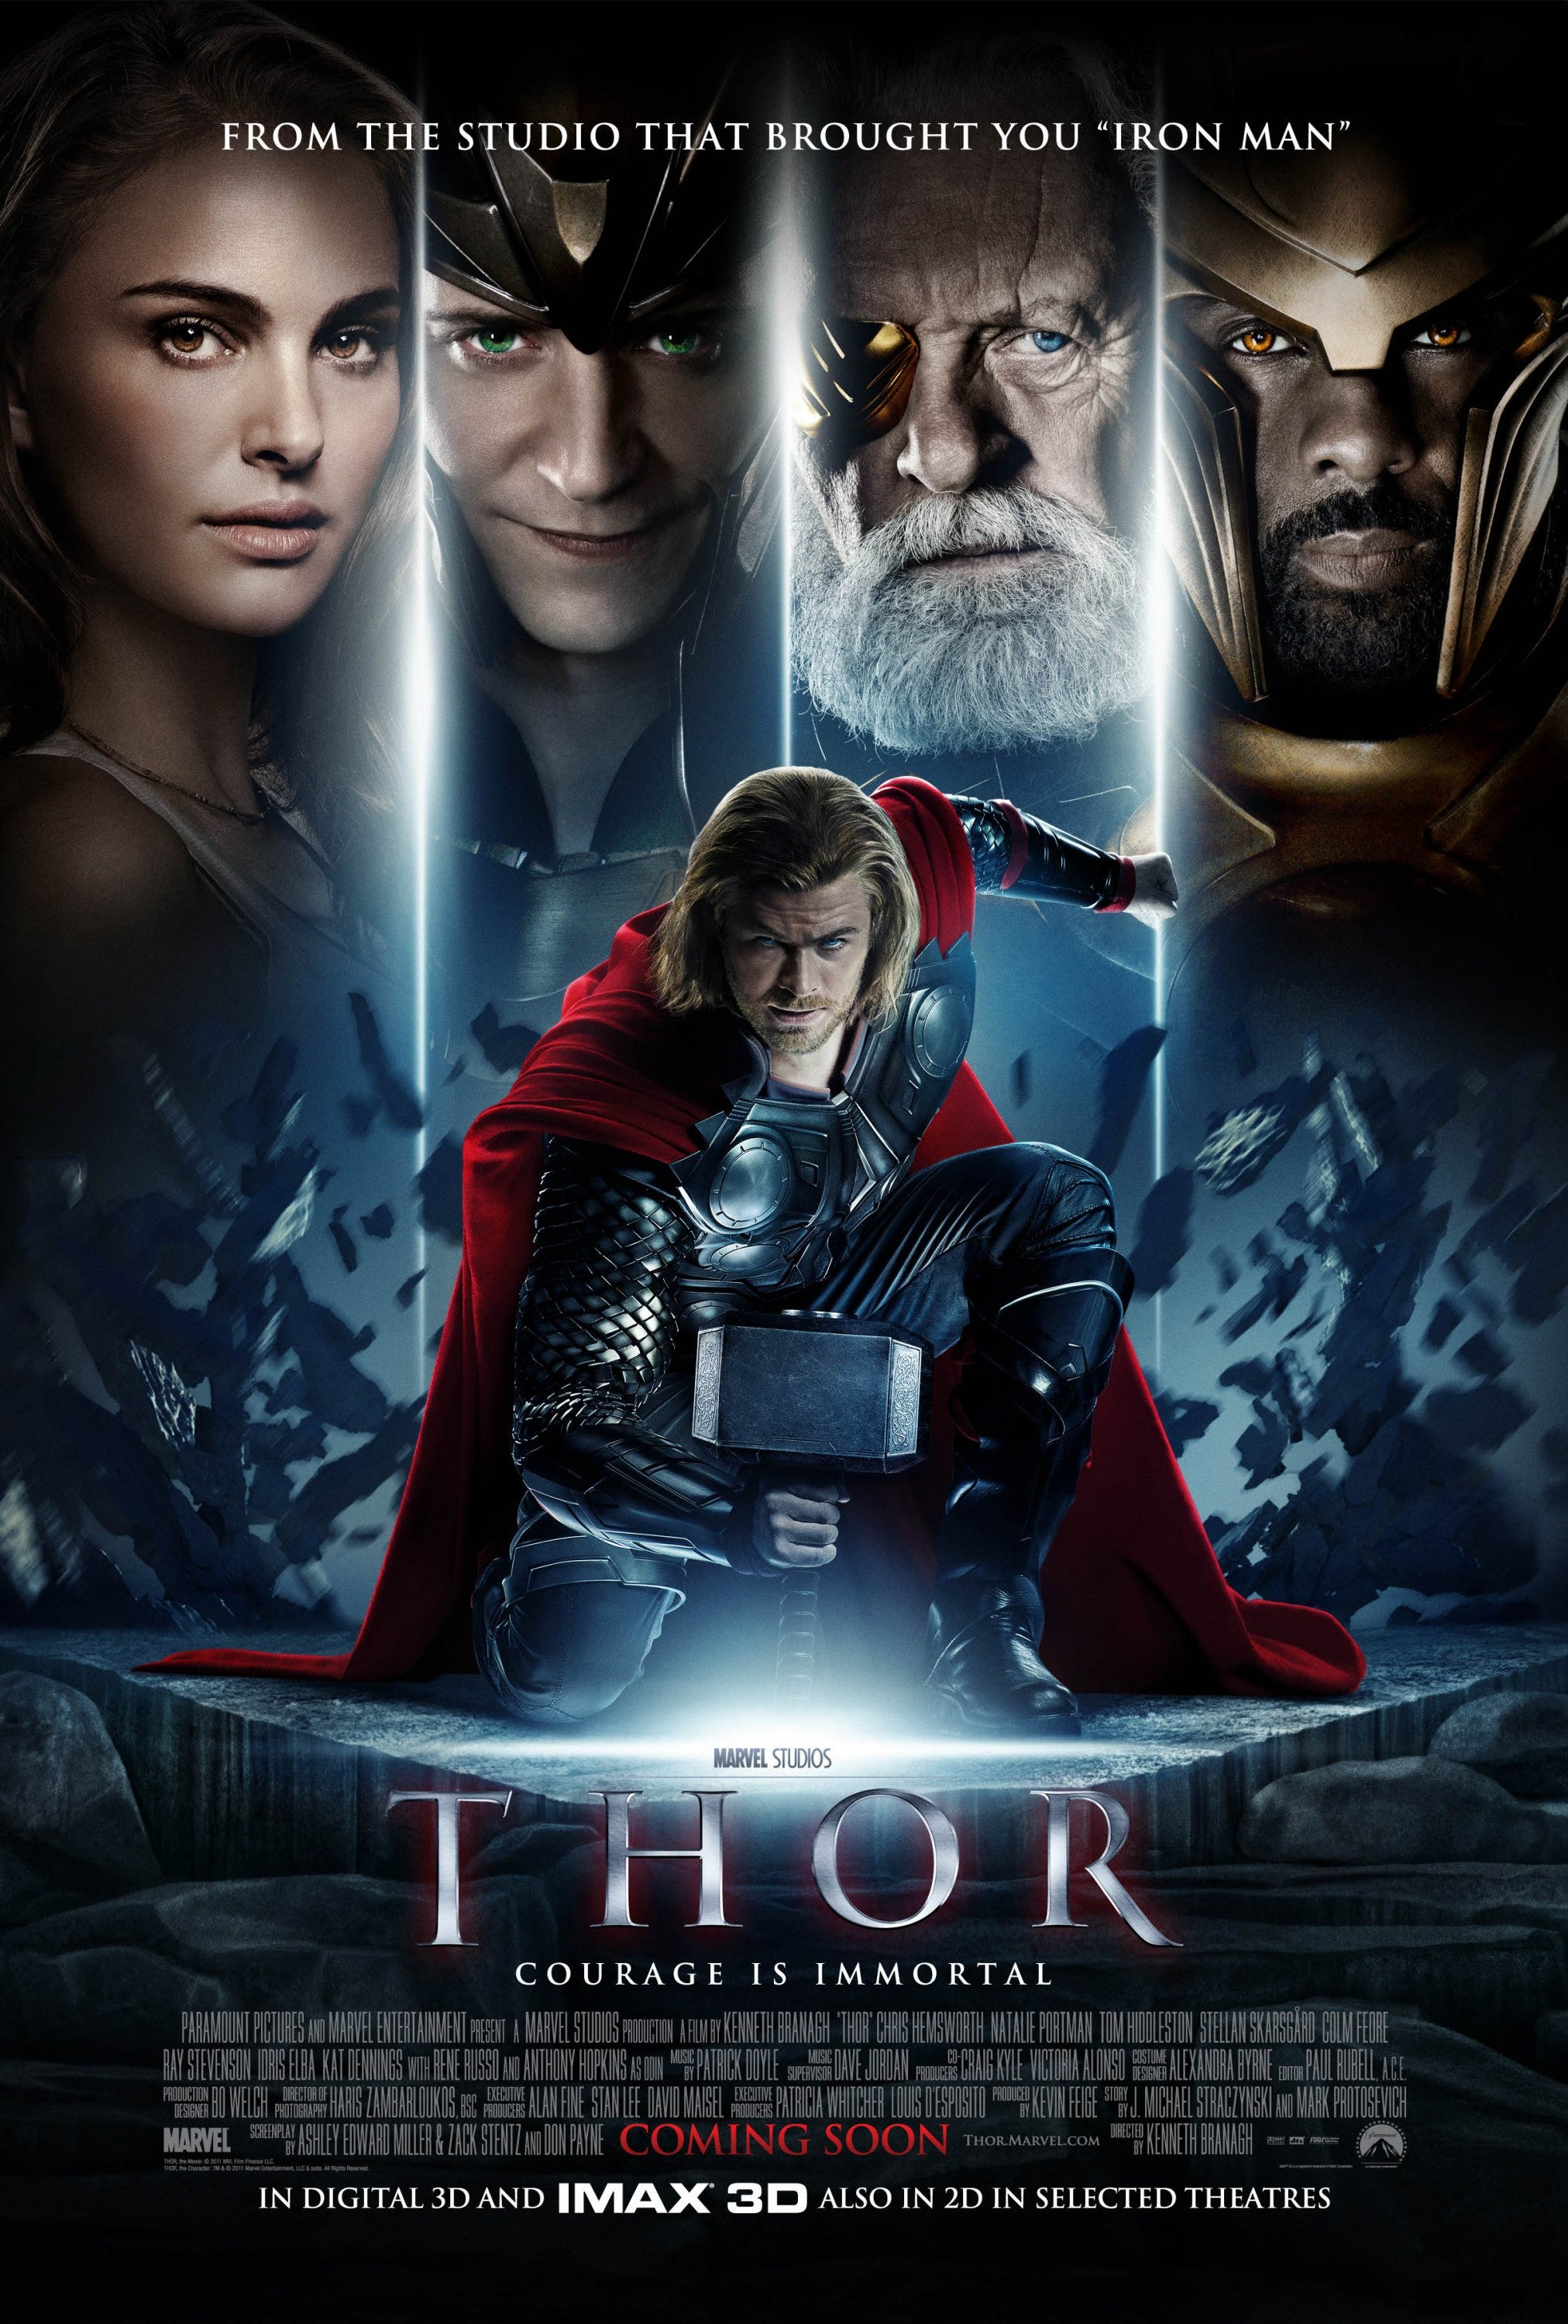 #15 Thor - As I mentioned earlier, growing up, Thor was my fav. And I was stoked for this flick. And . . . it was fine. That's it. -